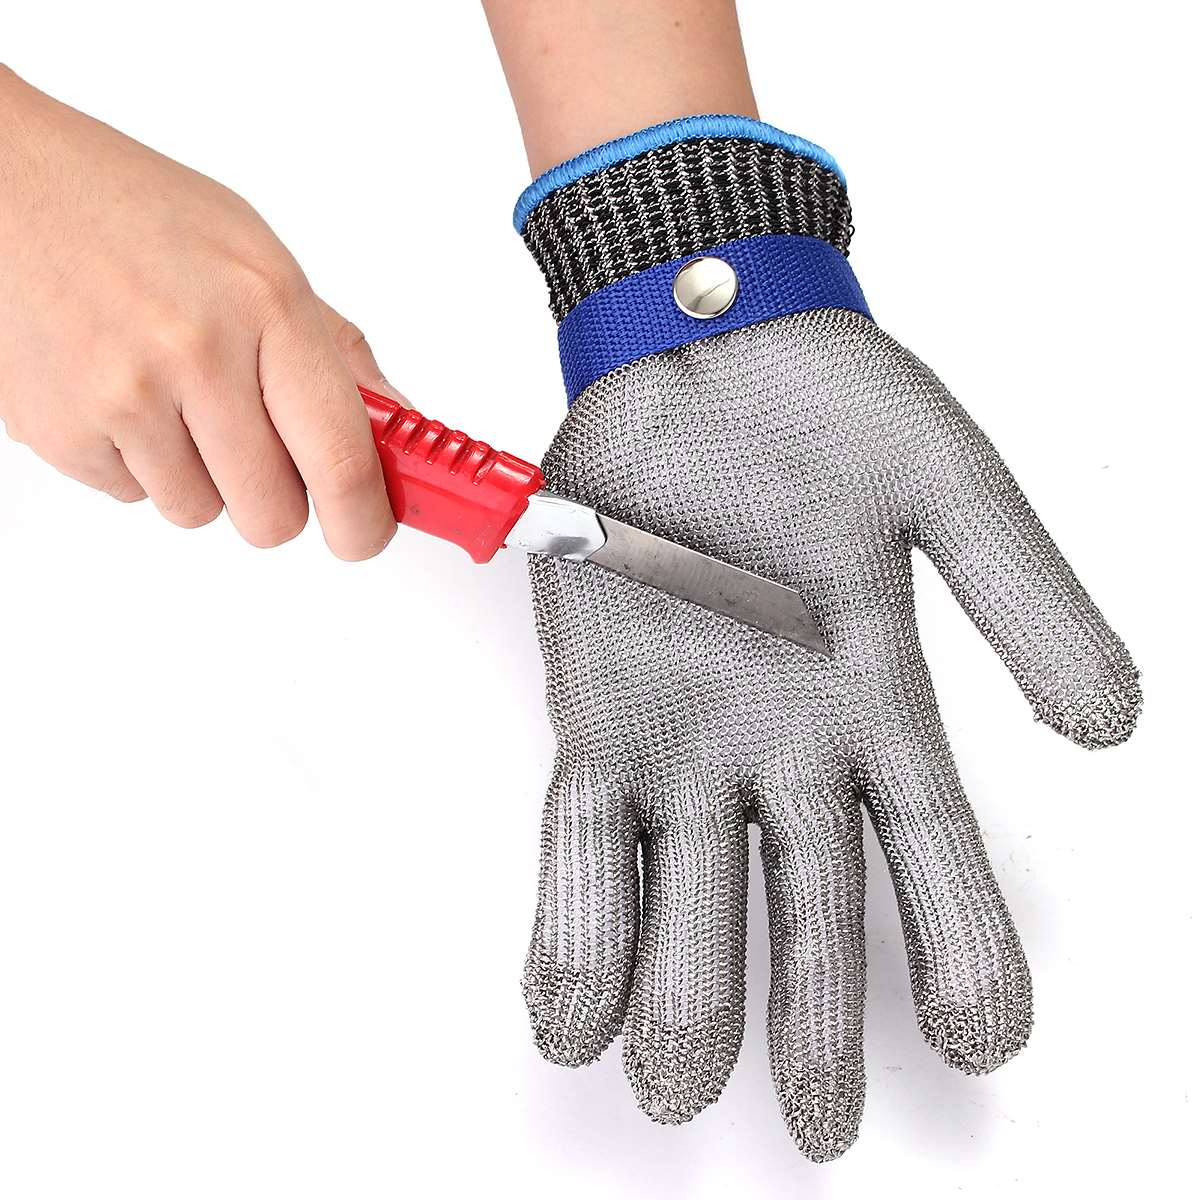 Size S Safety Cut Proof Stab Resistant Stainless Steel Wire Metal Mesh Glove High Performance Level 5 Protection top quality 304l stainless steel mesh knife cut resistant chain mail protective glove for kitchen butcher working safety